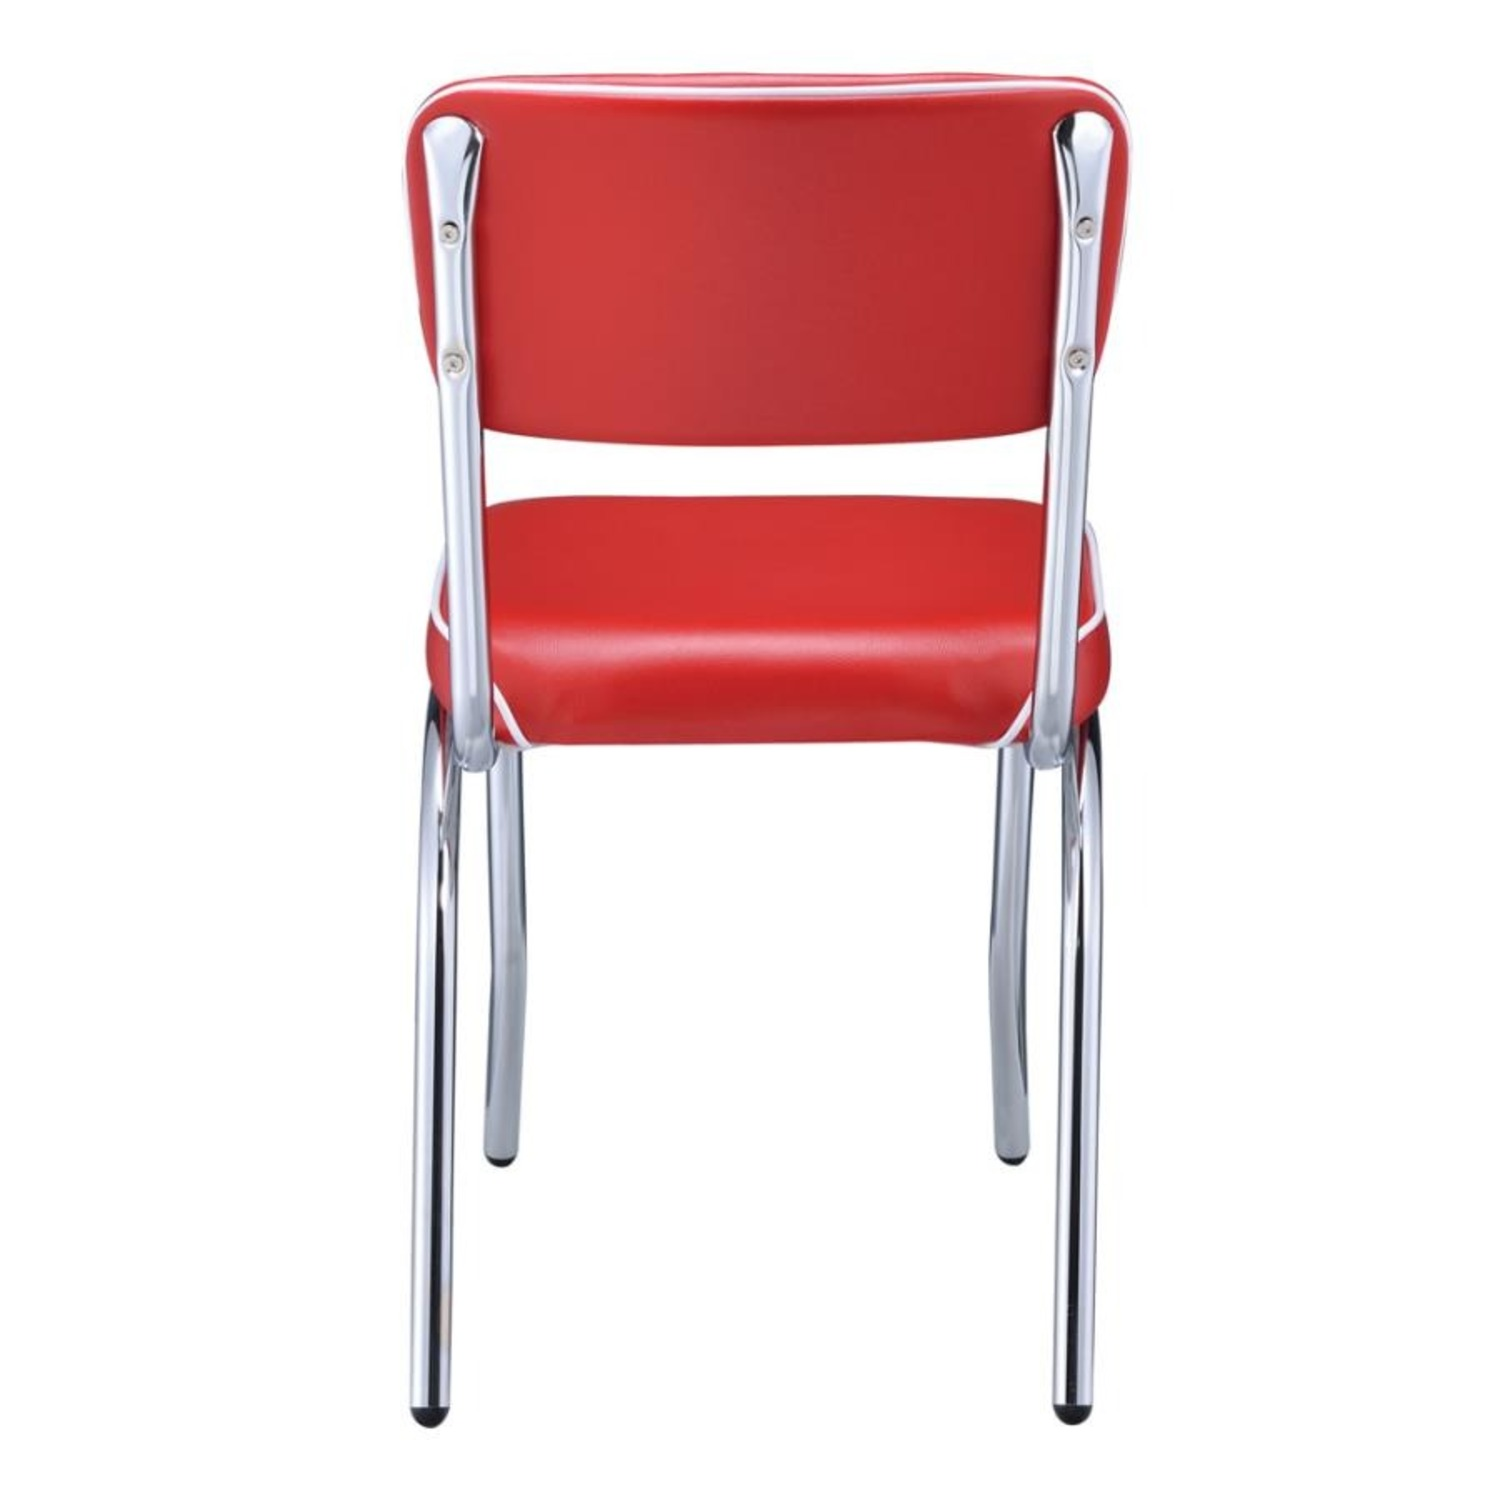 Mid-Century Style Dining Chair In Red Leatherette - image-3